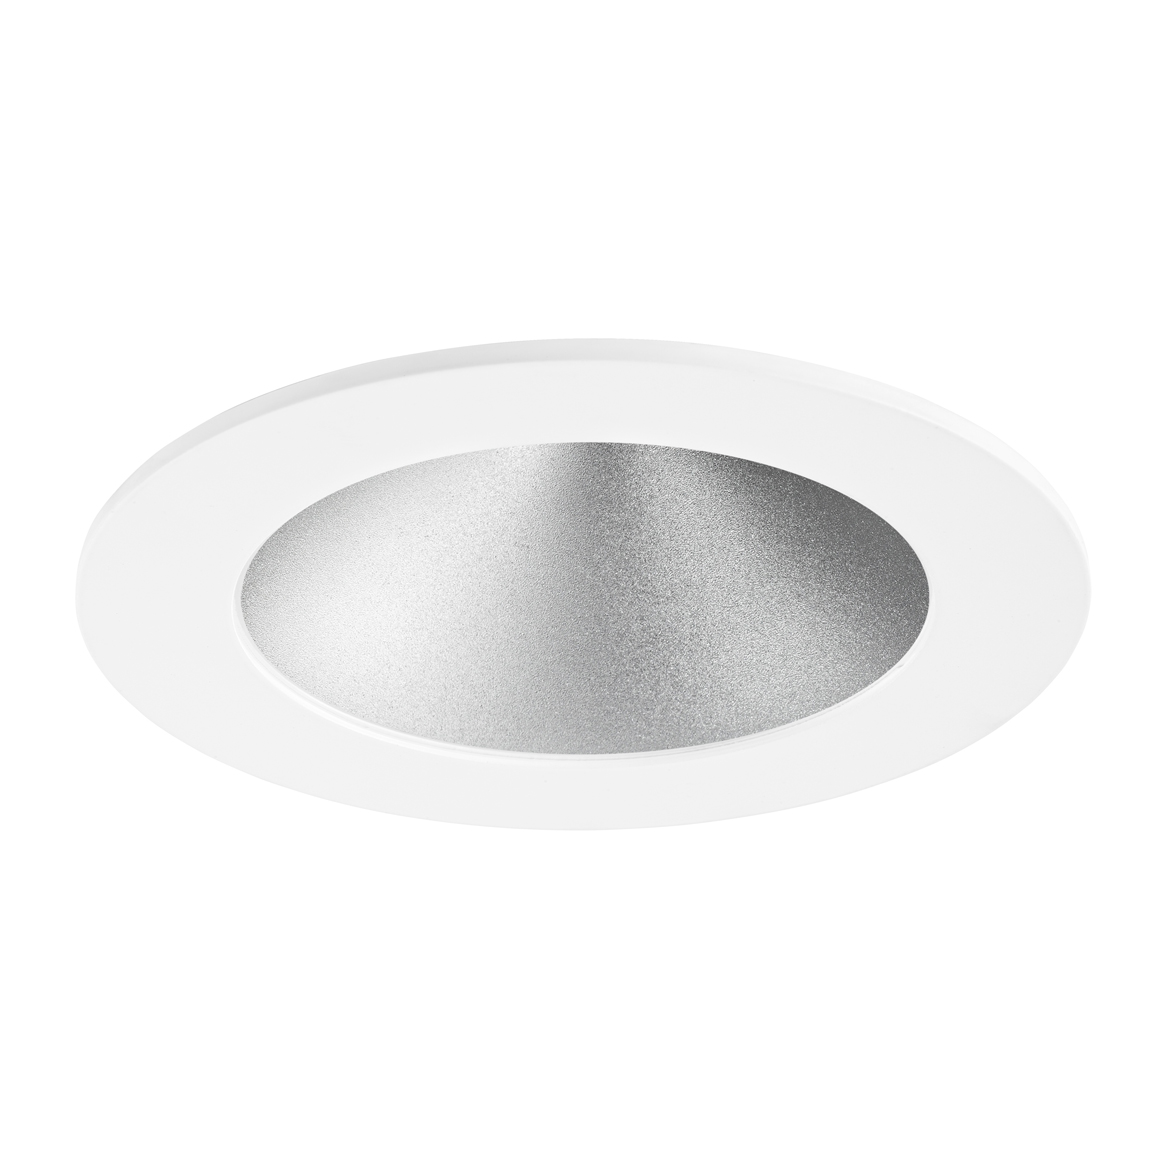 Rovasi lighting fixtures manufacturer complete range of lighting fixtures manufacturer complete range of architectural and technical lighting solutions for indoor and outdoor use arubaitofo Choice Image